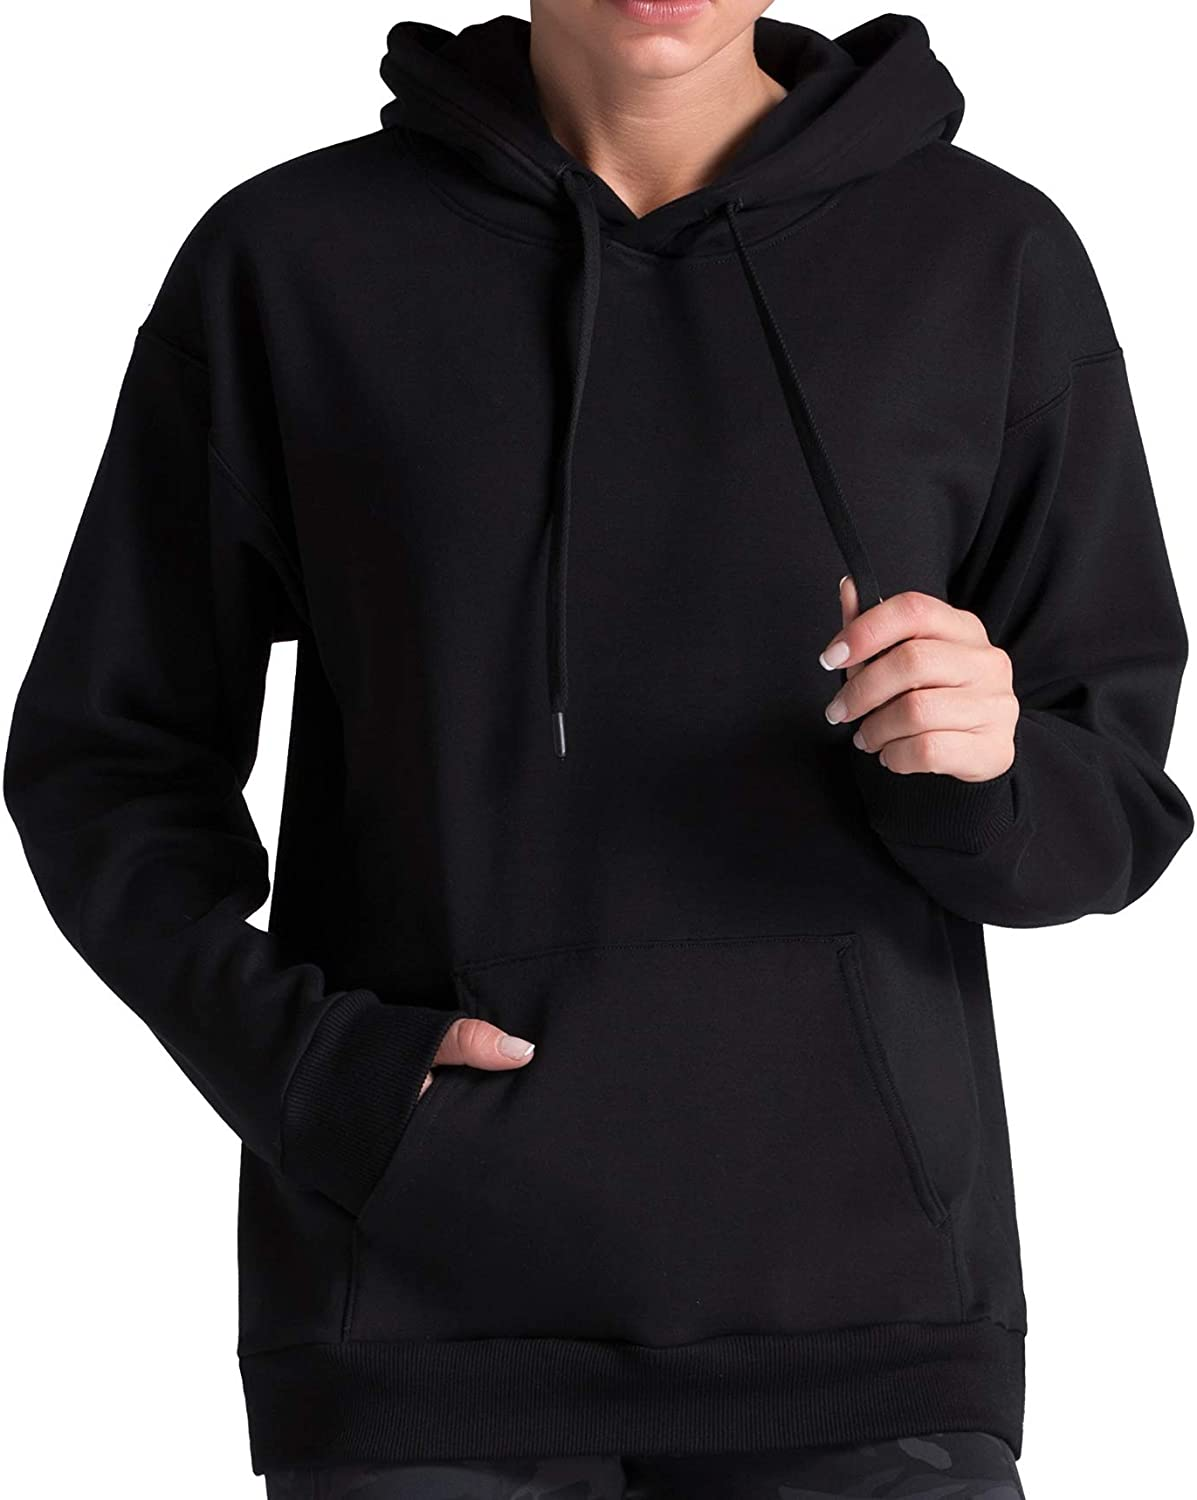 Dragon Fit Women Pullover Hoodie Loose fit Ultra Soft FleeceLined Active Sweatshirt with Pockets